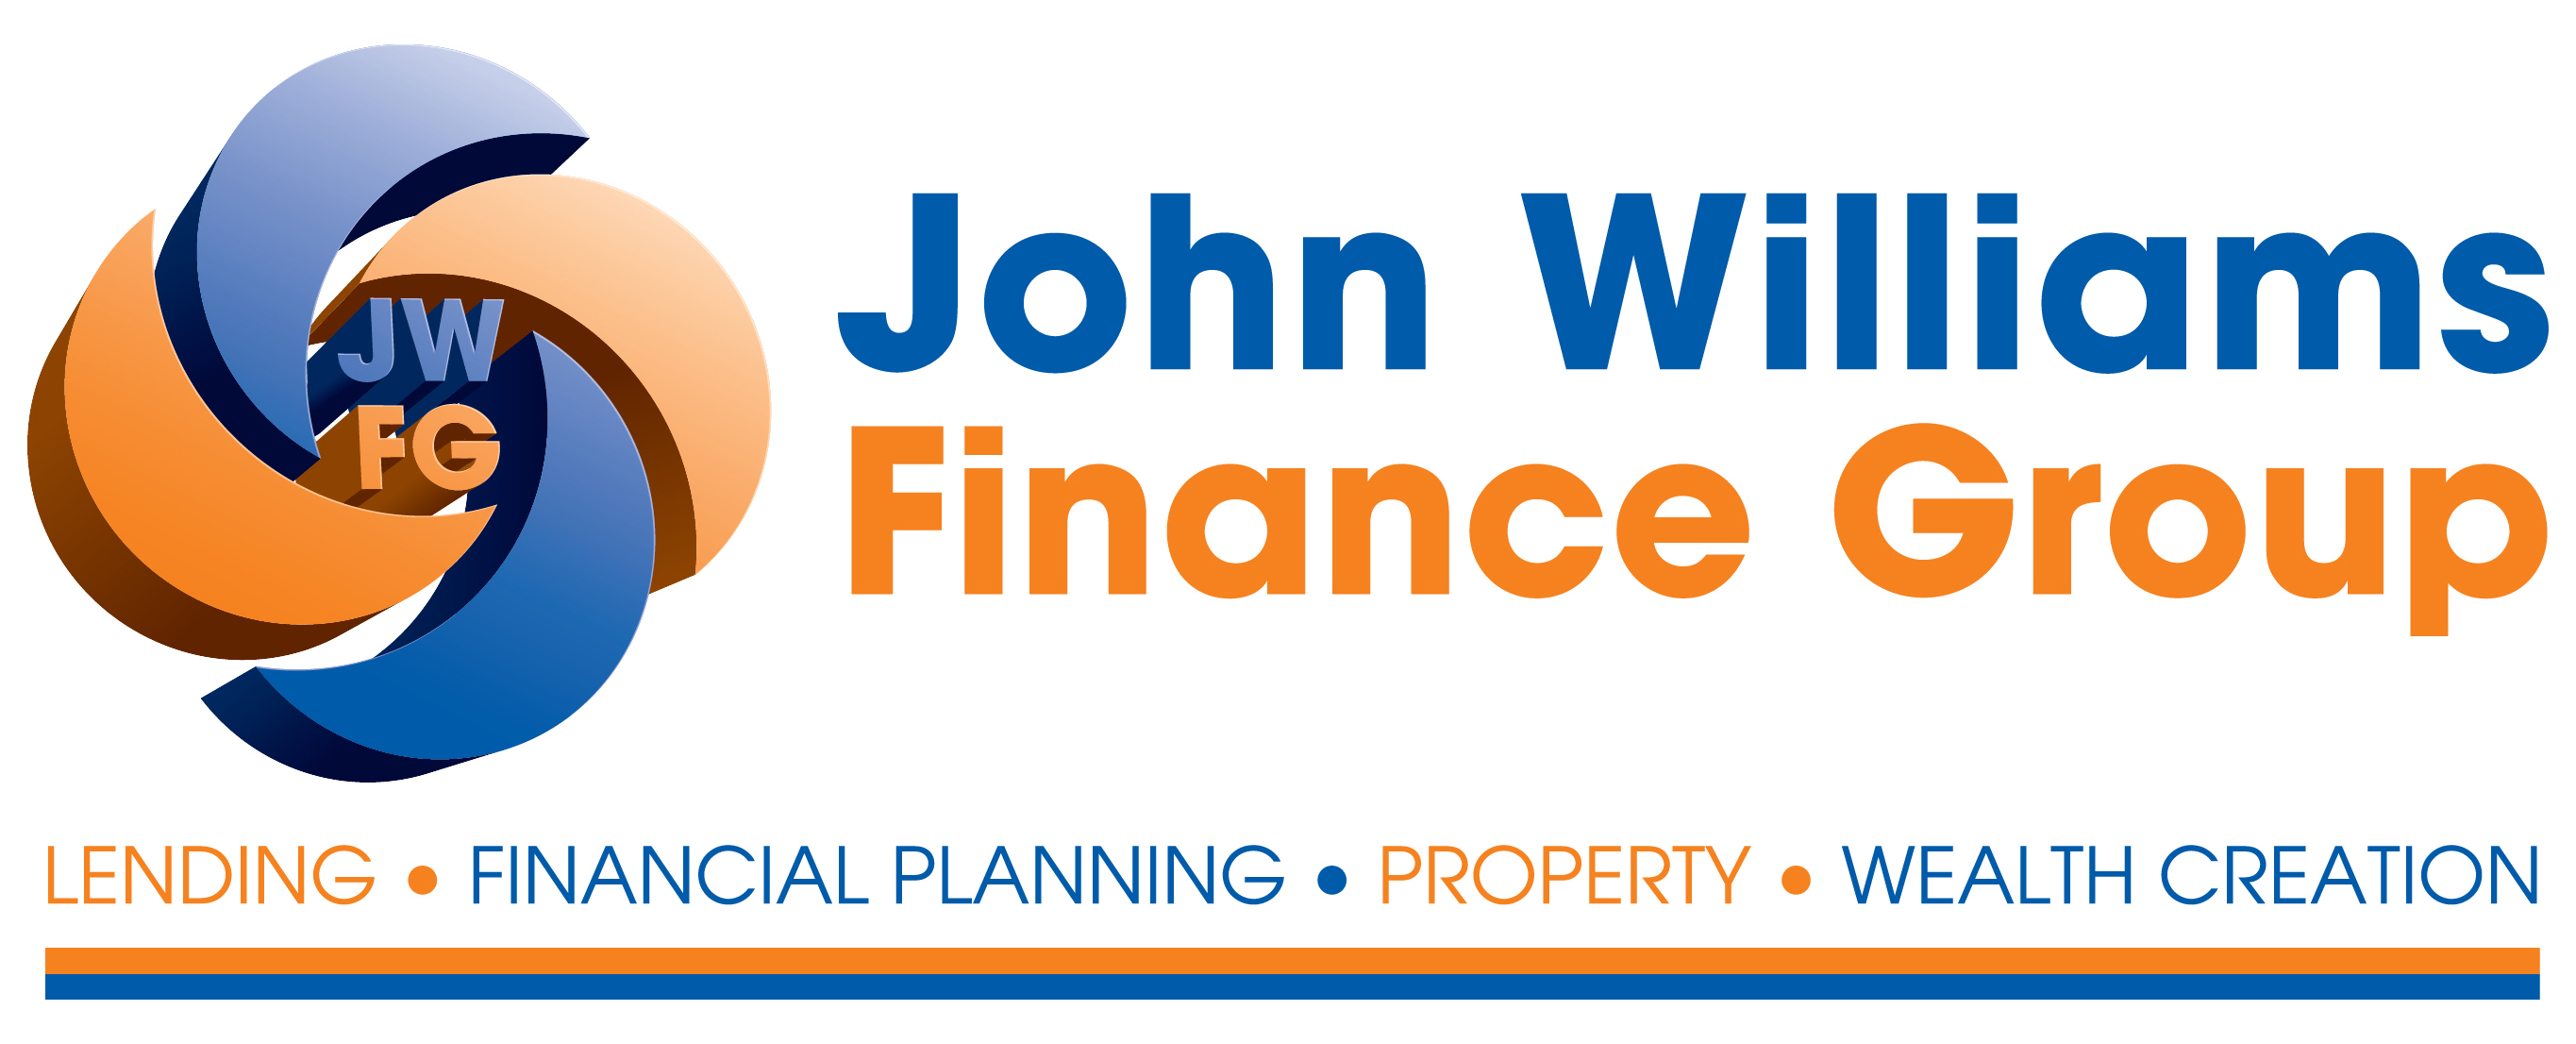 John Williams Finance Group